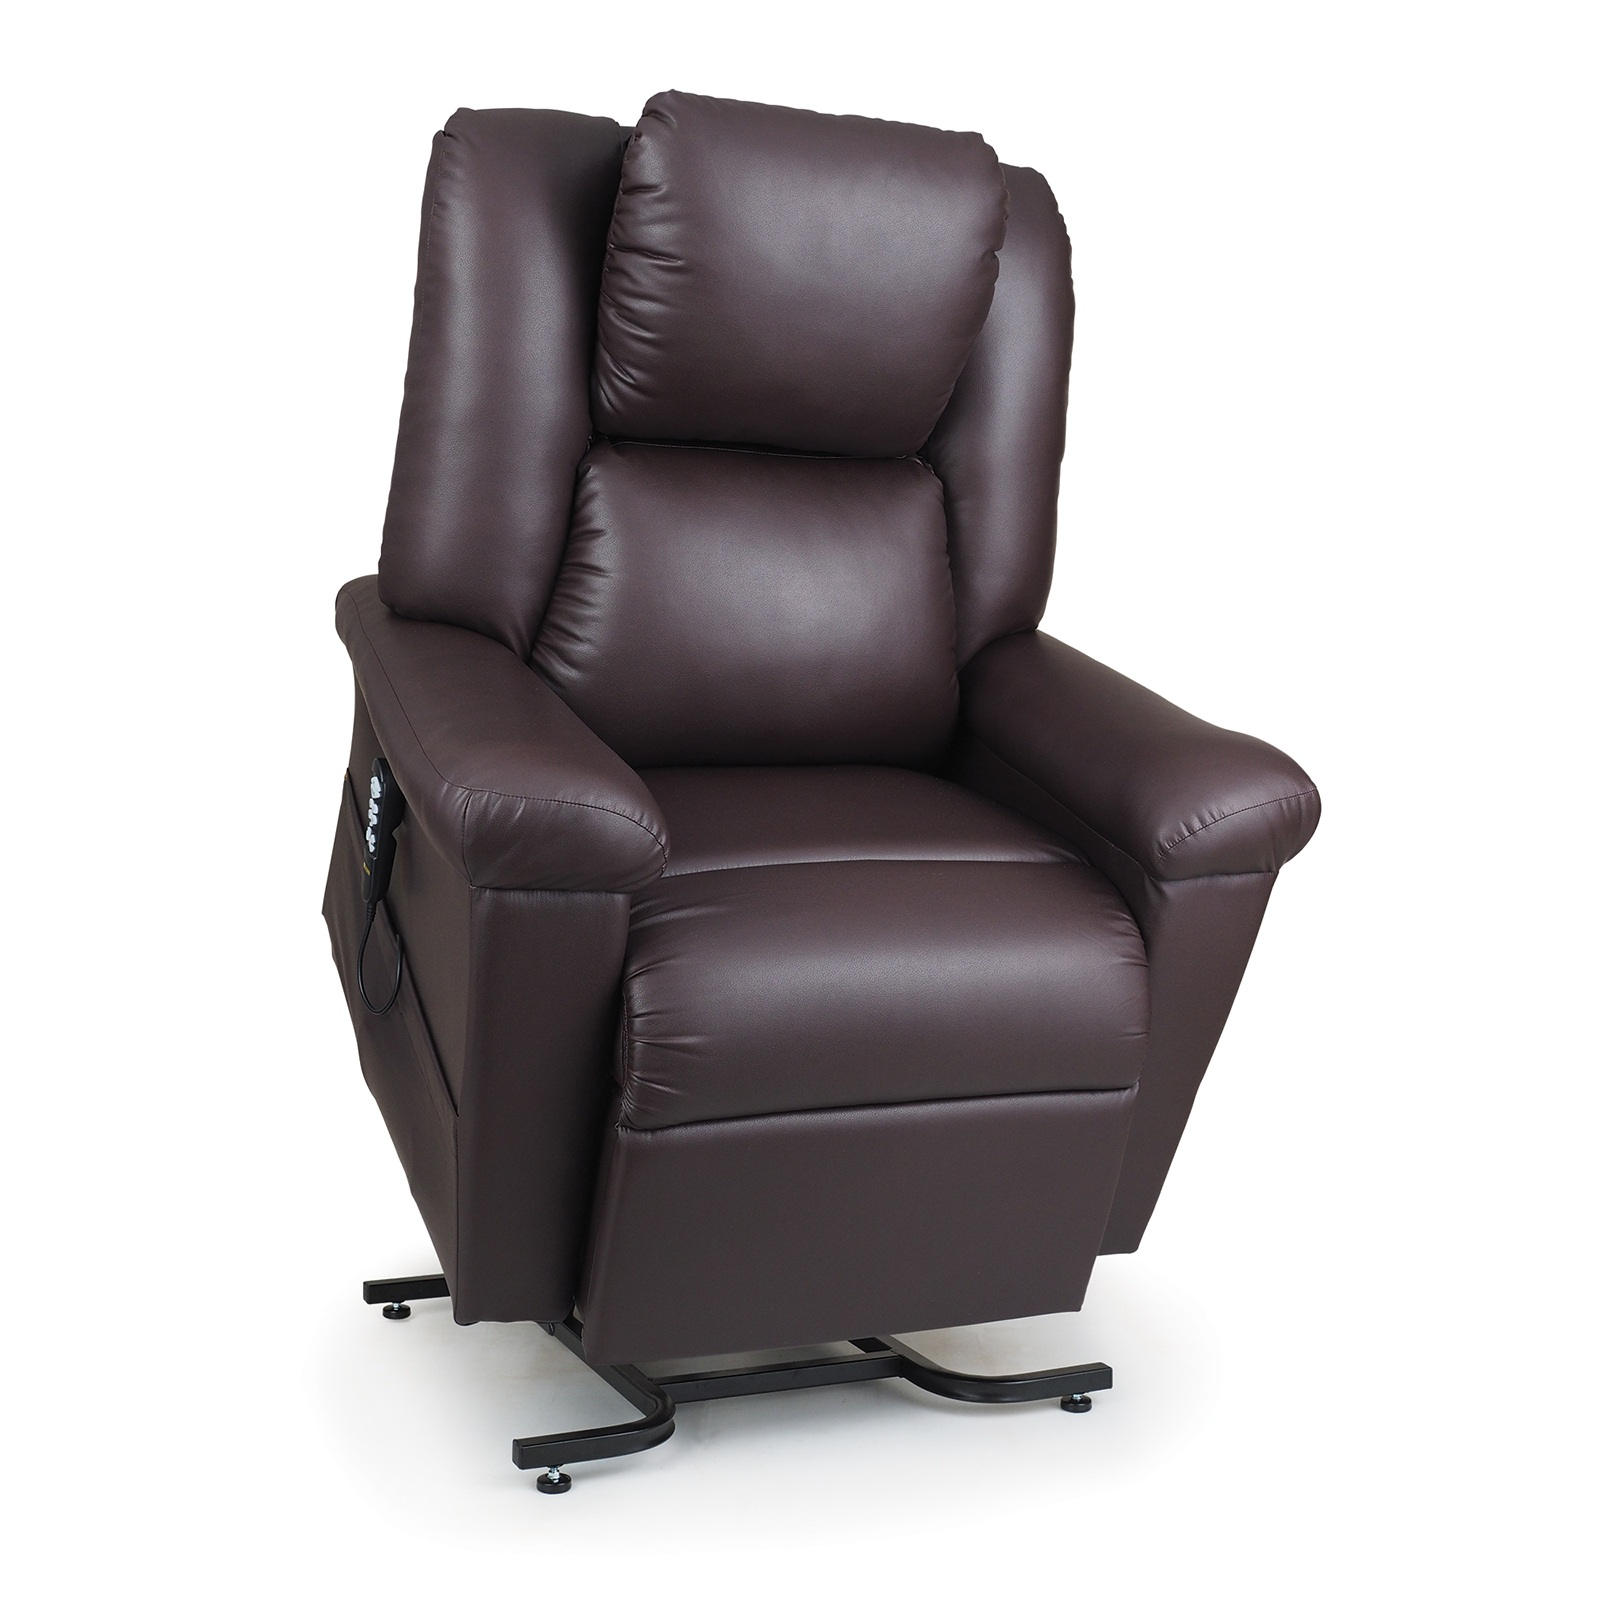 DayDreamer recliner lift chair Golden Technologies